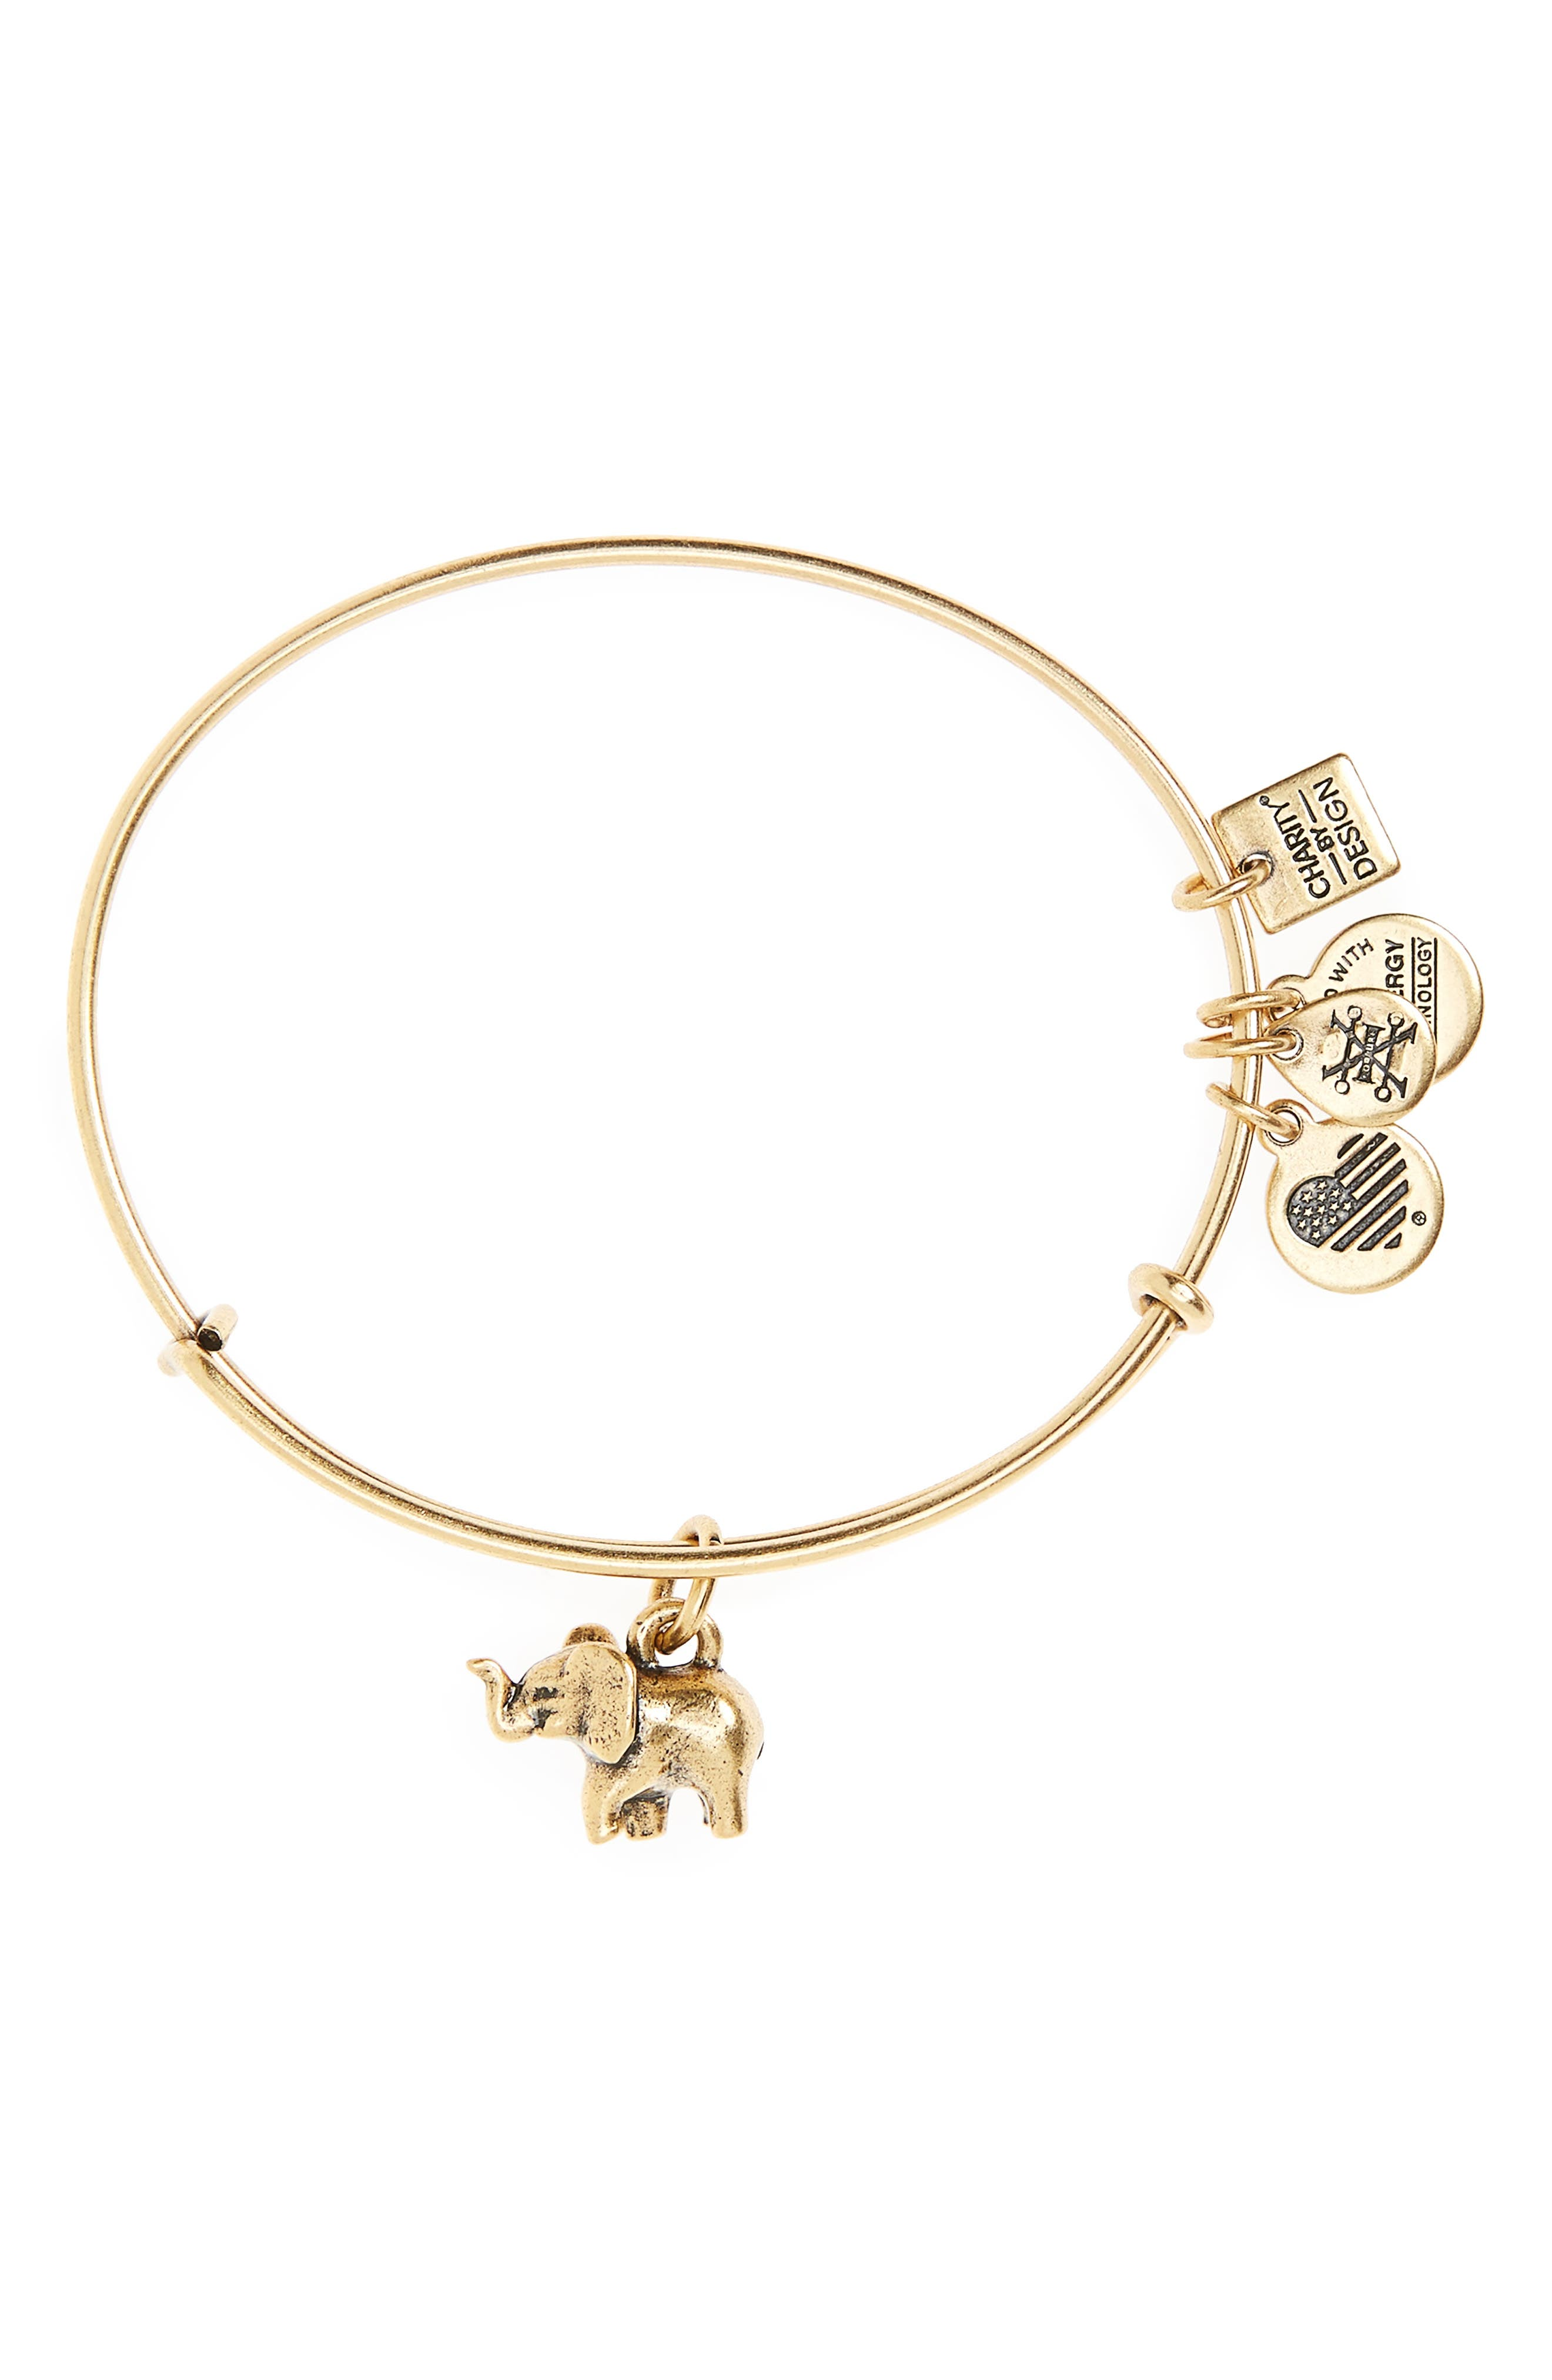 Main Image - Alex and Ani Charity by Design Elephant II Adjustable Bangle